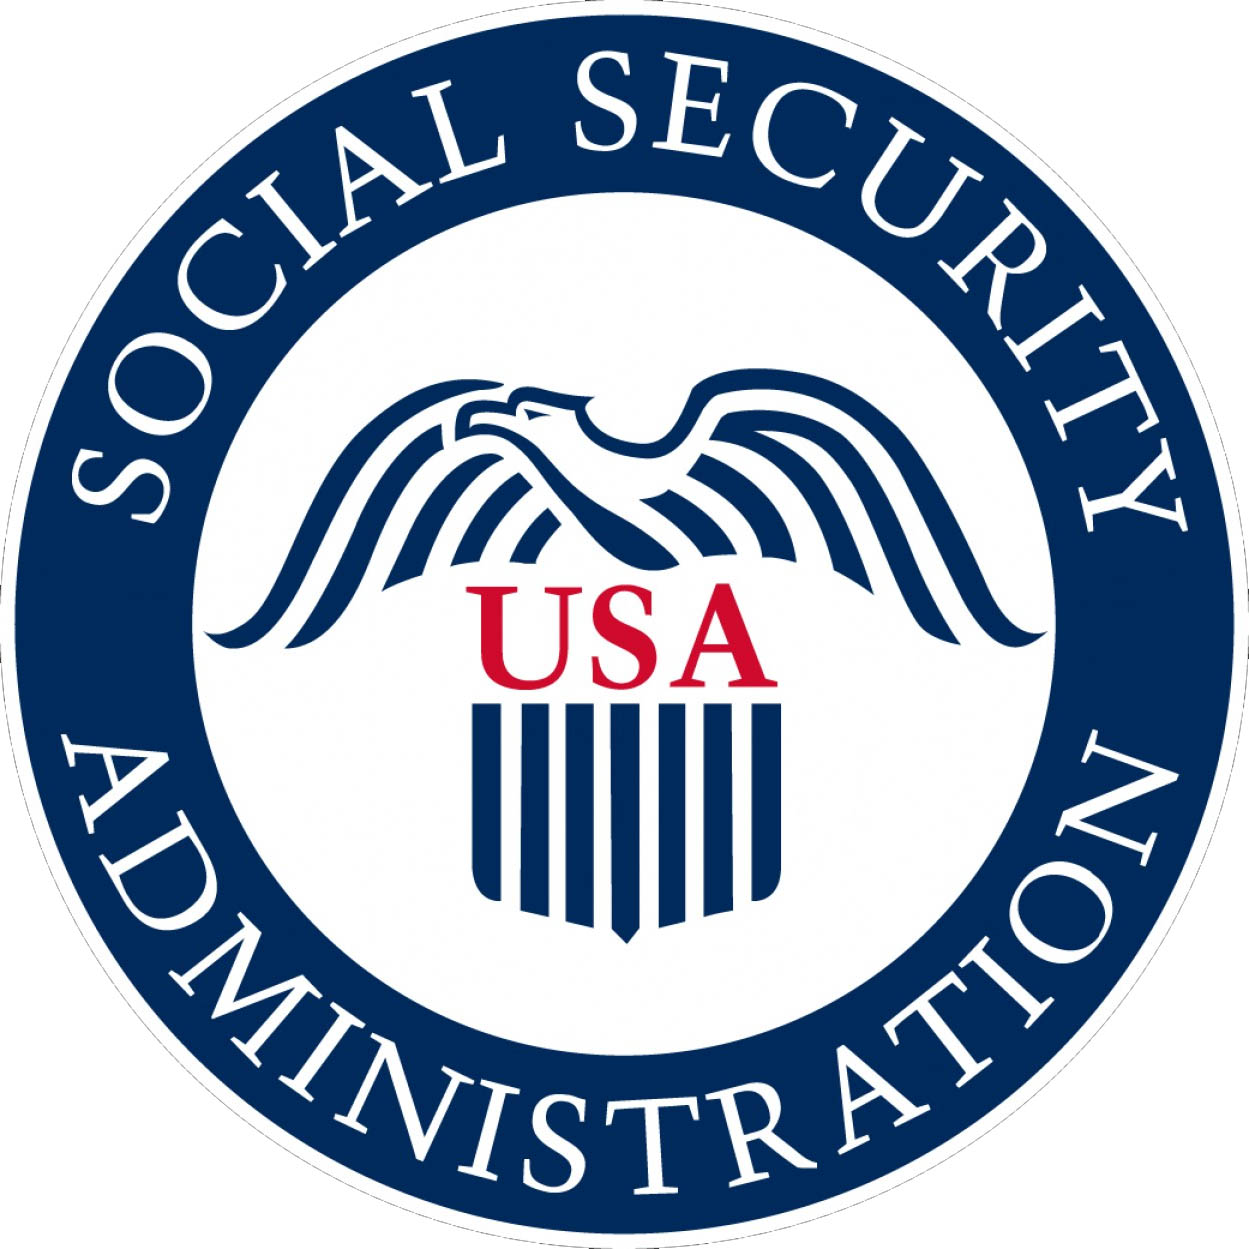 The United States of America Social Security Administration